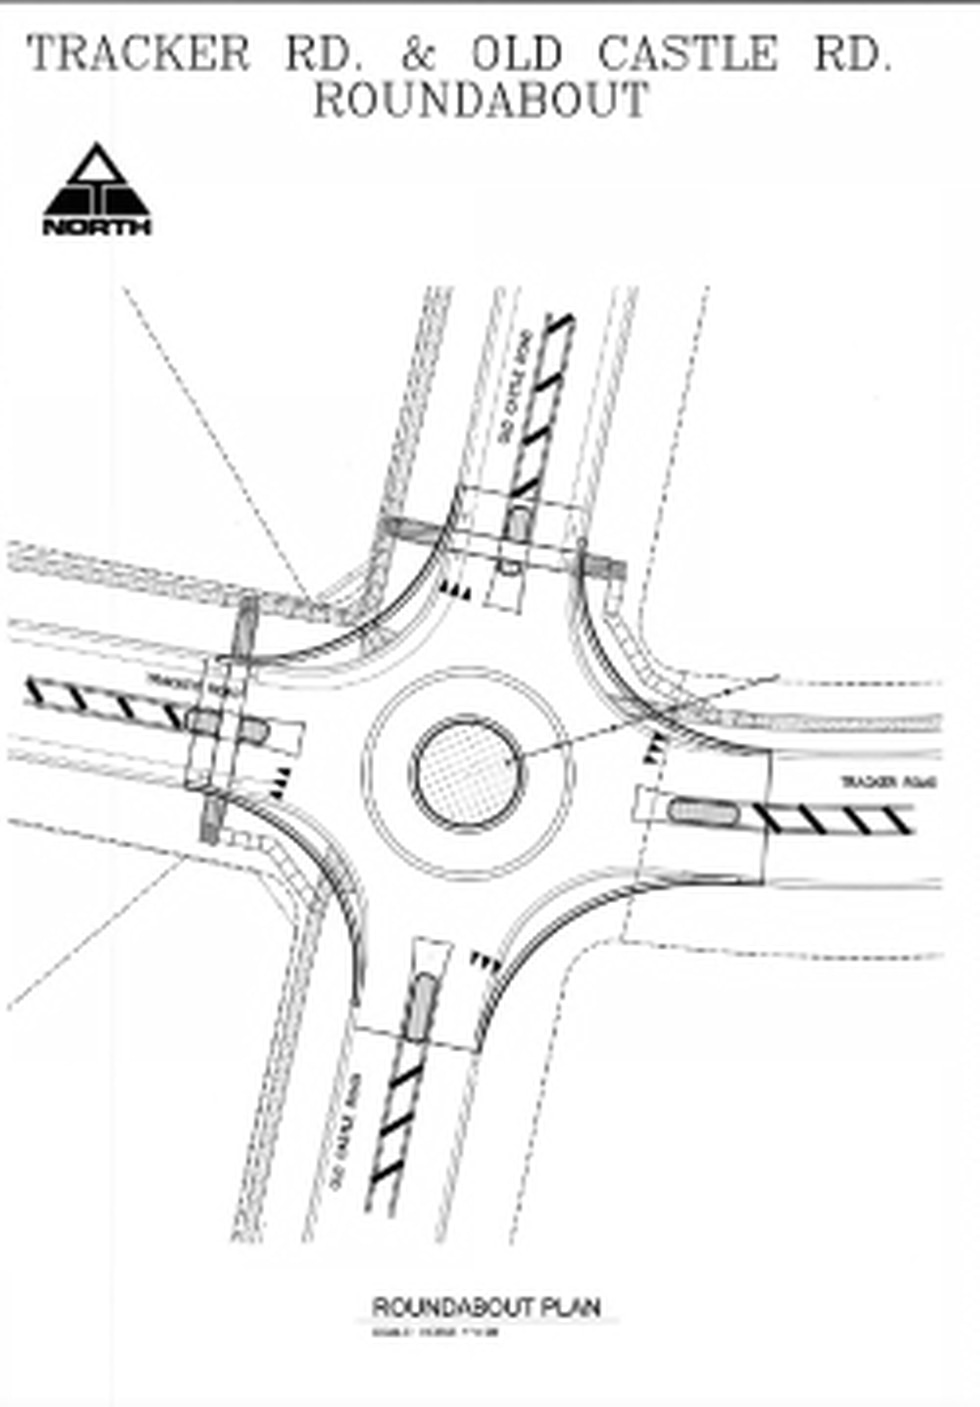 Construction starts Septemeber 20th for a new roundabout at the intersection of East Tracker...